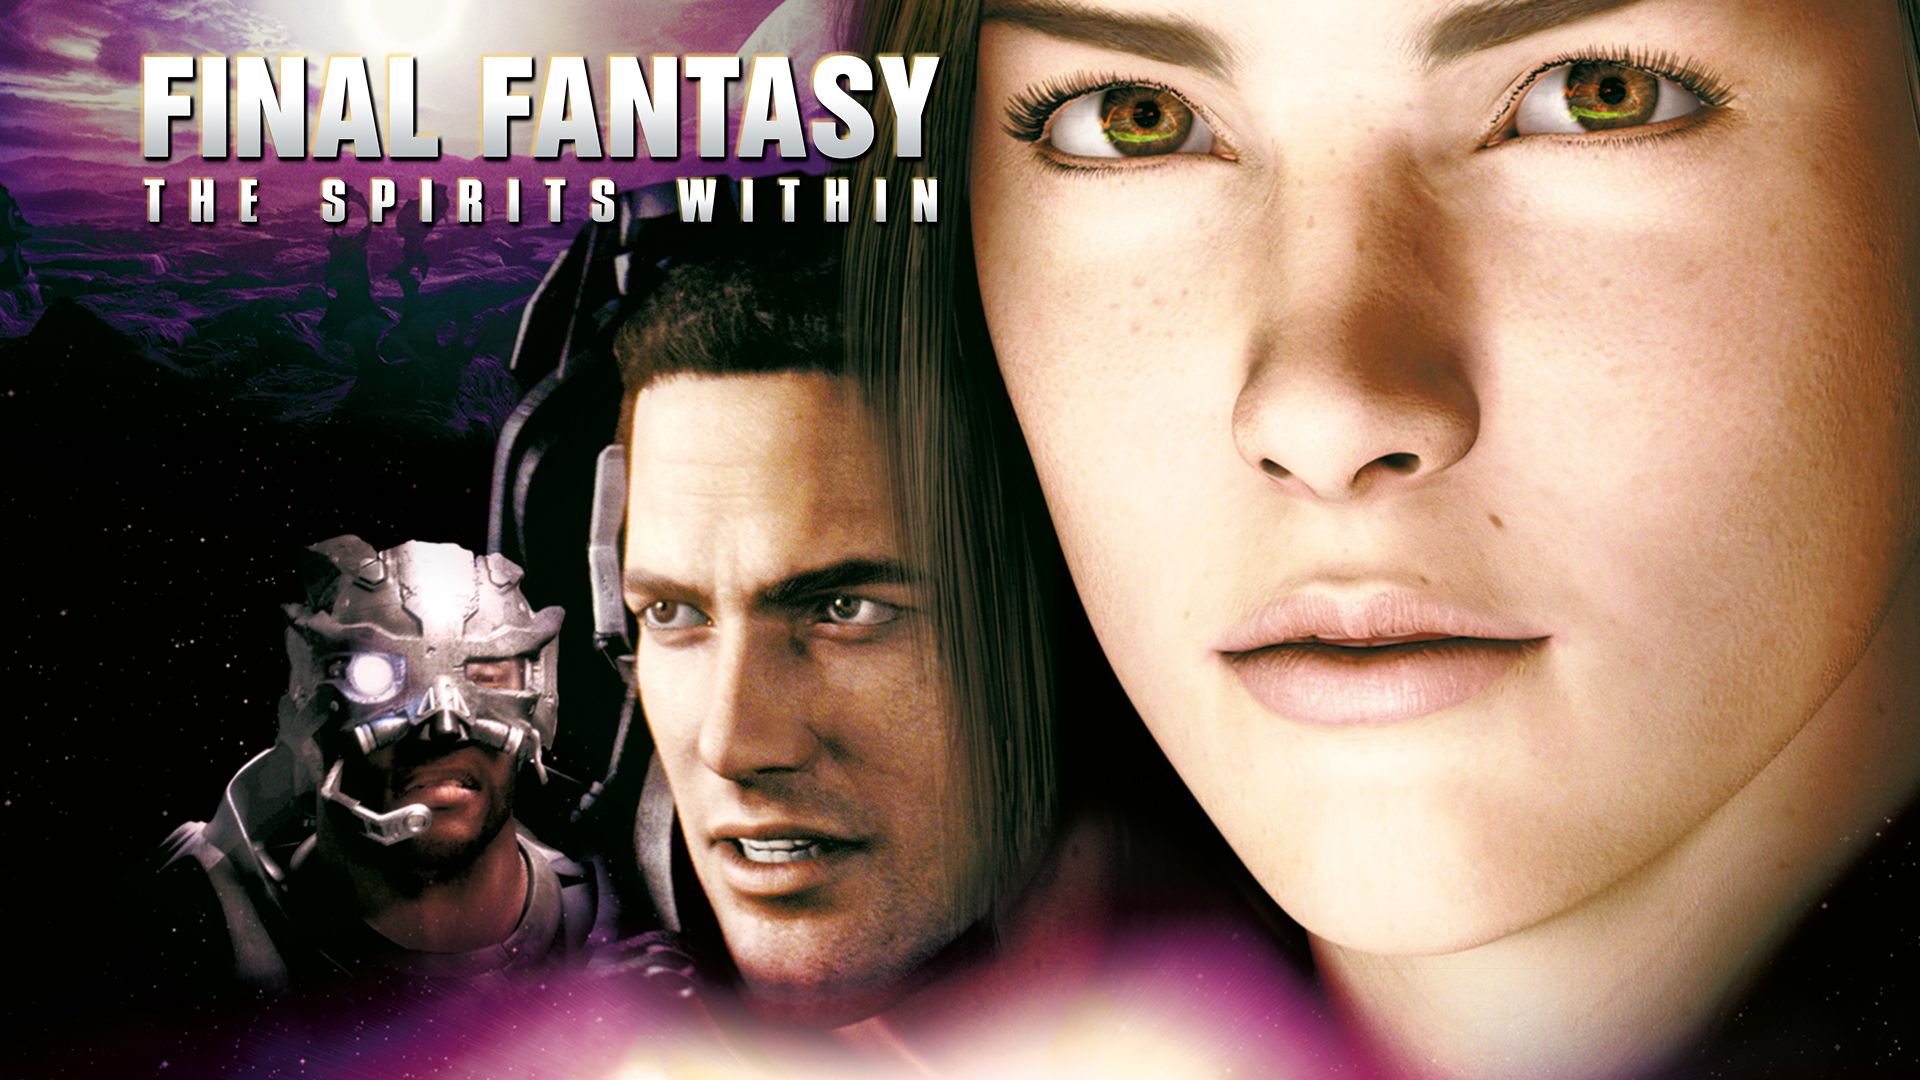 final fantasy the spirits within movie poster